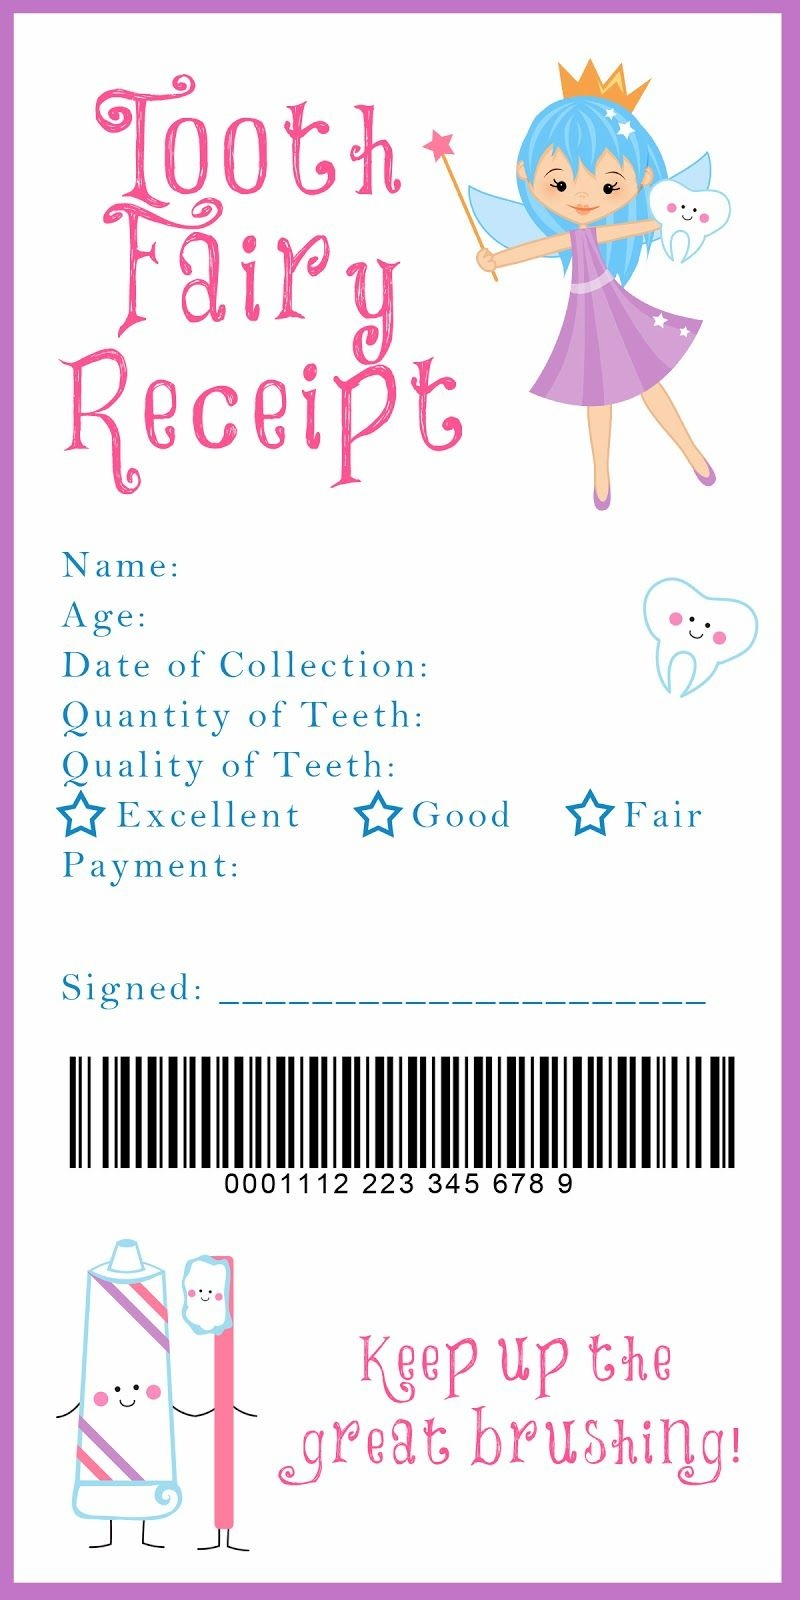 Tooth Fairy Receipt And Many Other Awesome Printables | A Xixi <3 - Free Tooth Fairy Printables